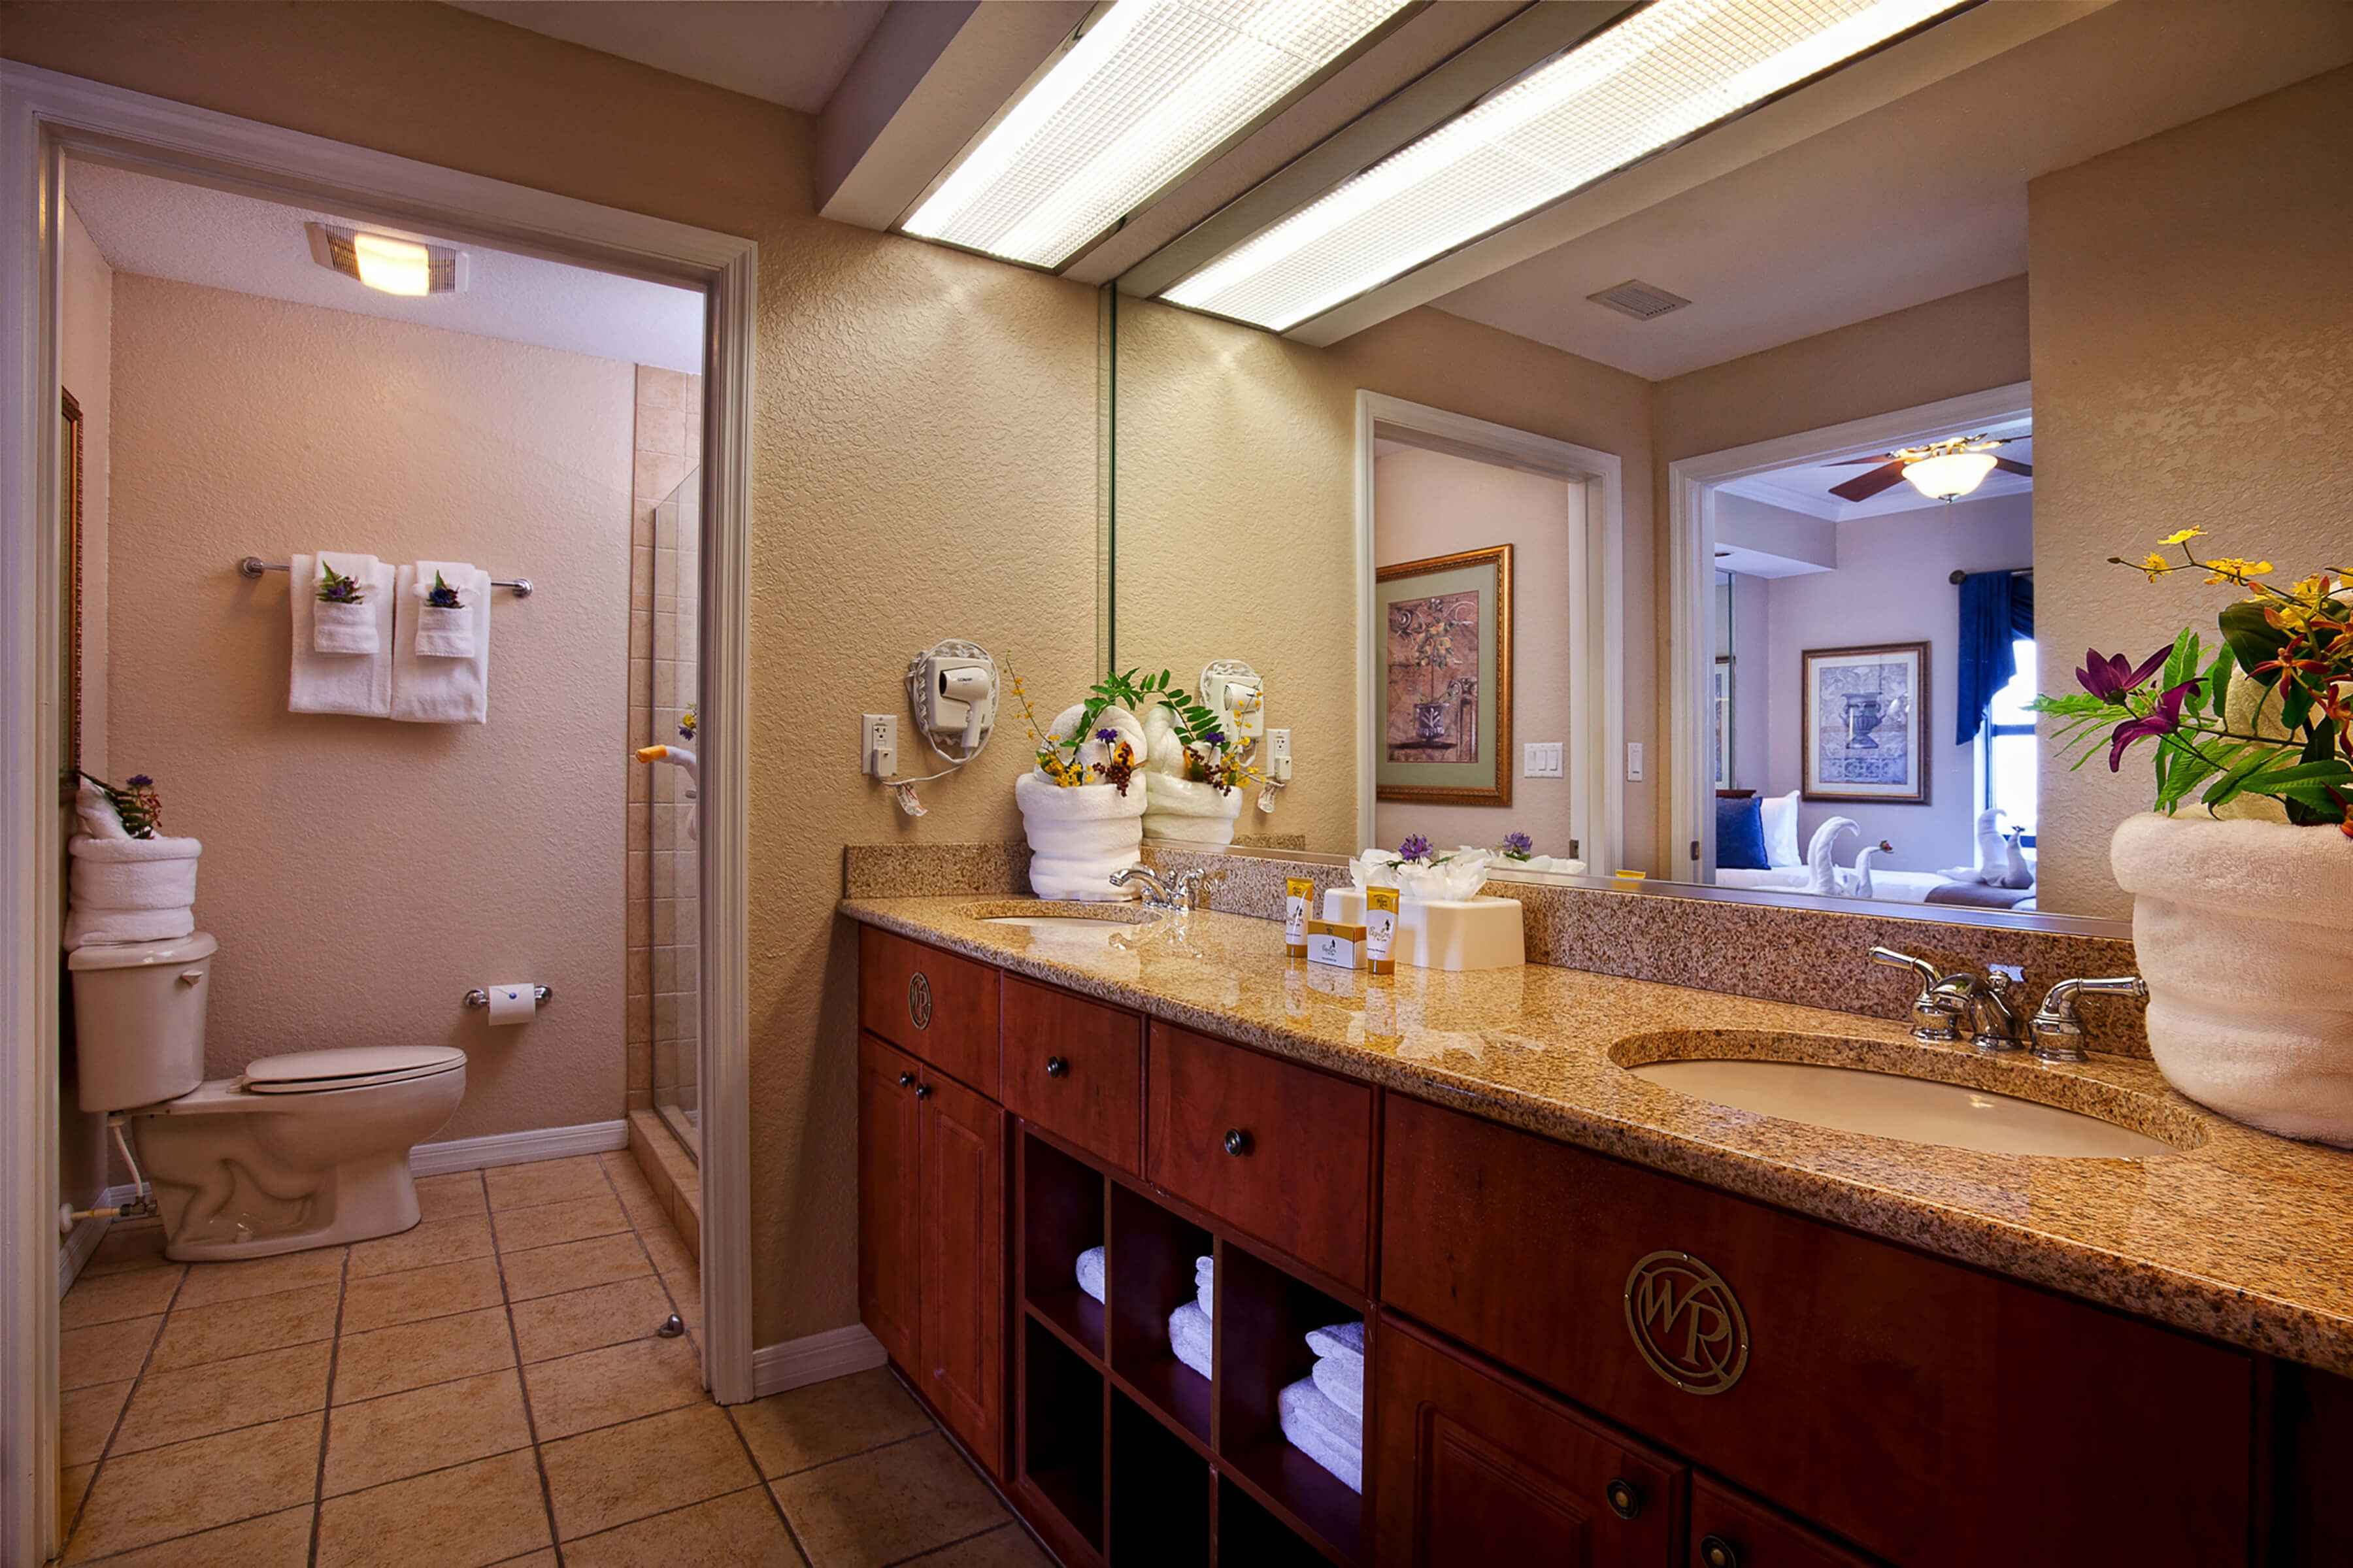 Bathroom in Villa | Westgate Palace Resort | Orlando, FL | Westgate Resorts